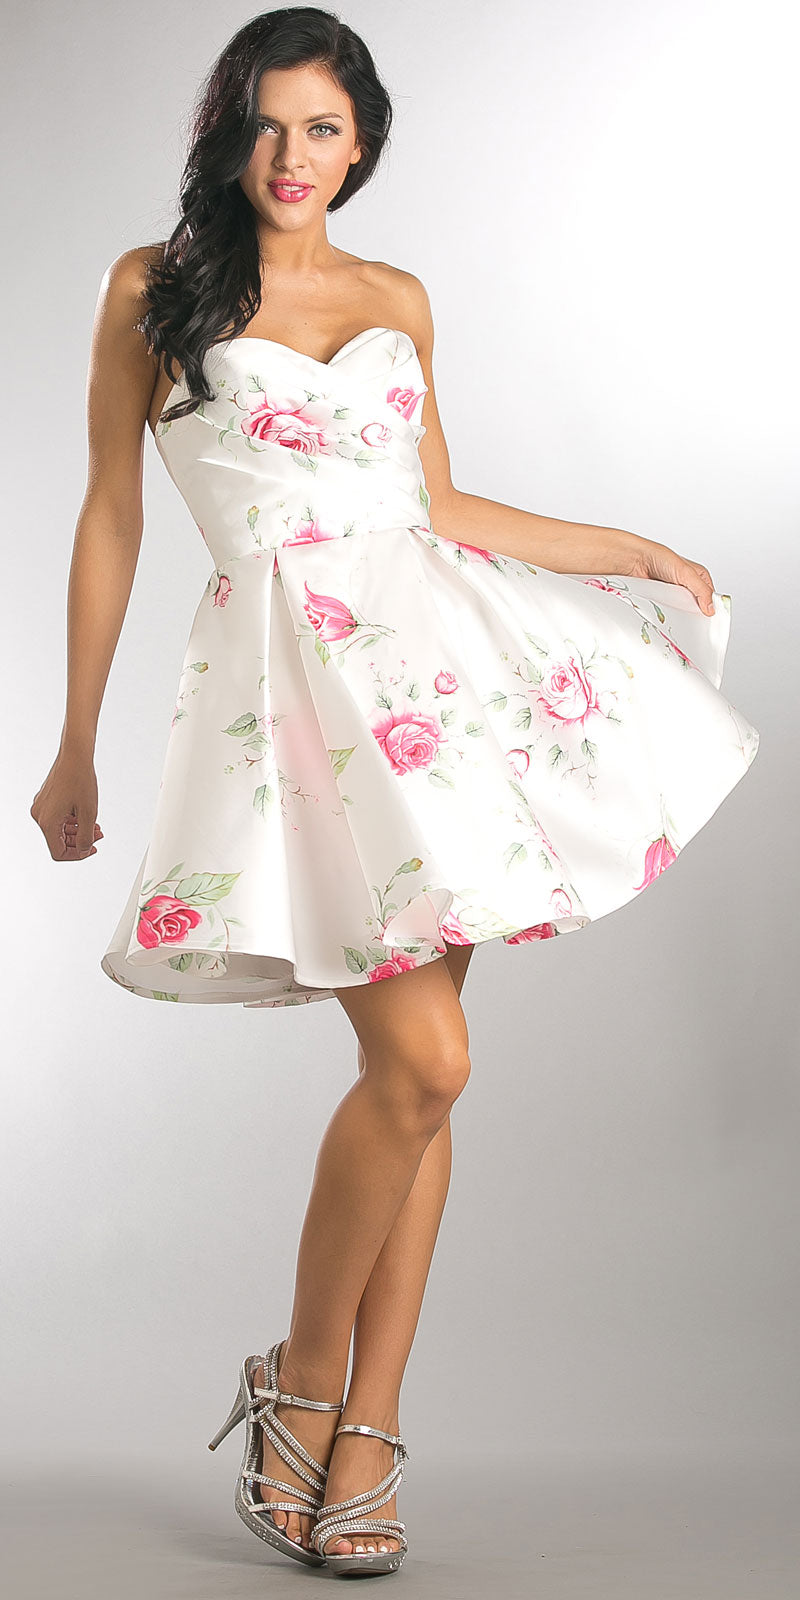 Main image of Strapless Sweetheart Neck Rose Print Short Homecoming Dress